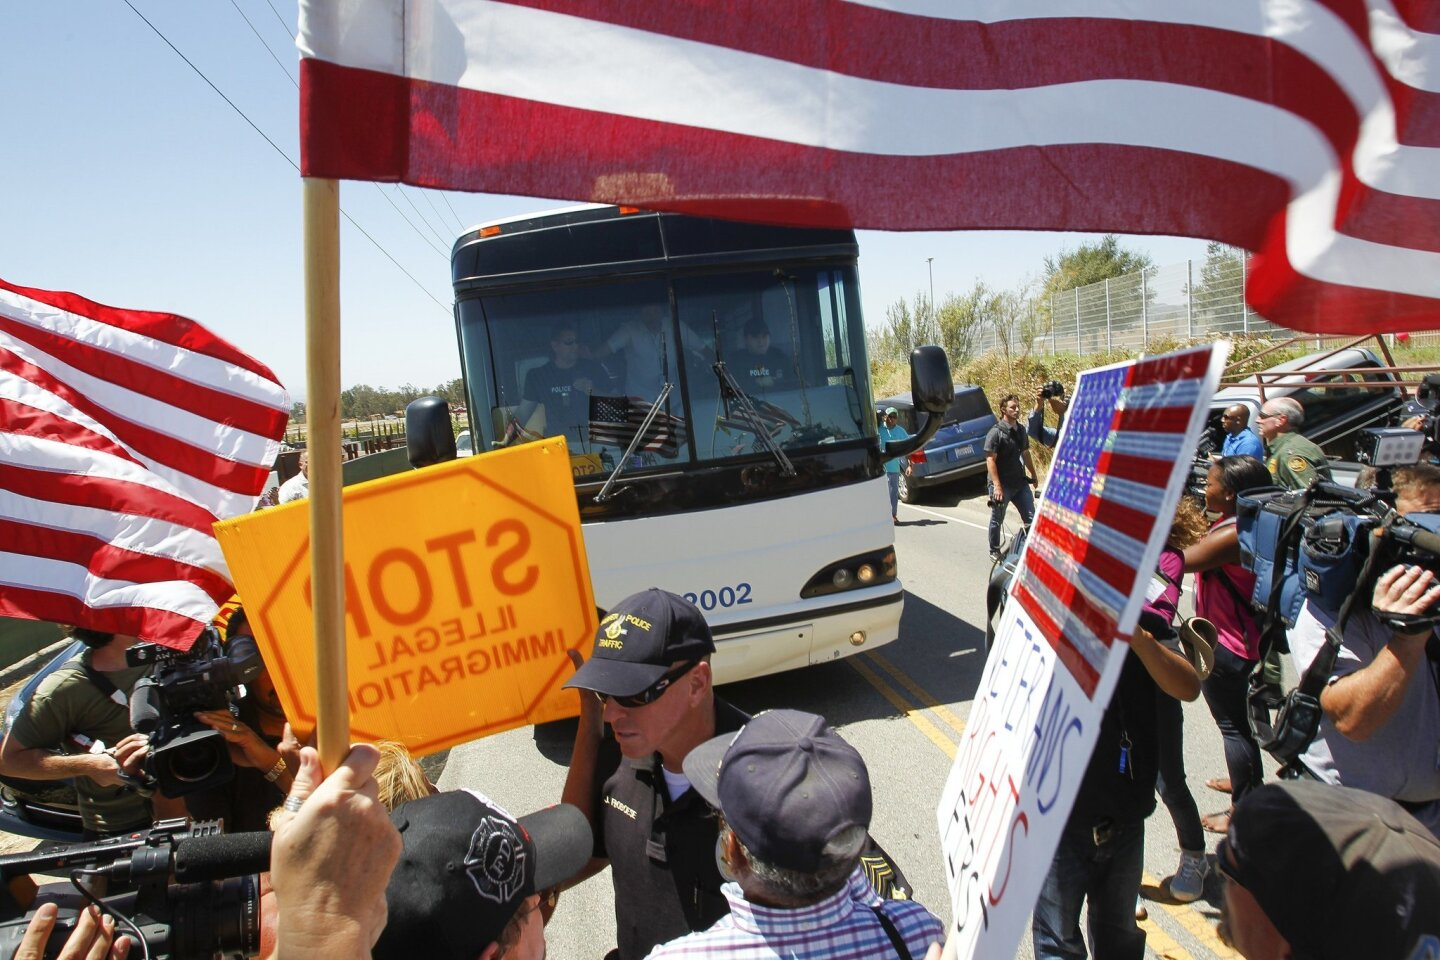 Detainees' Buses Blocked by Protesters